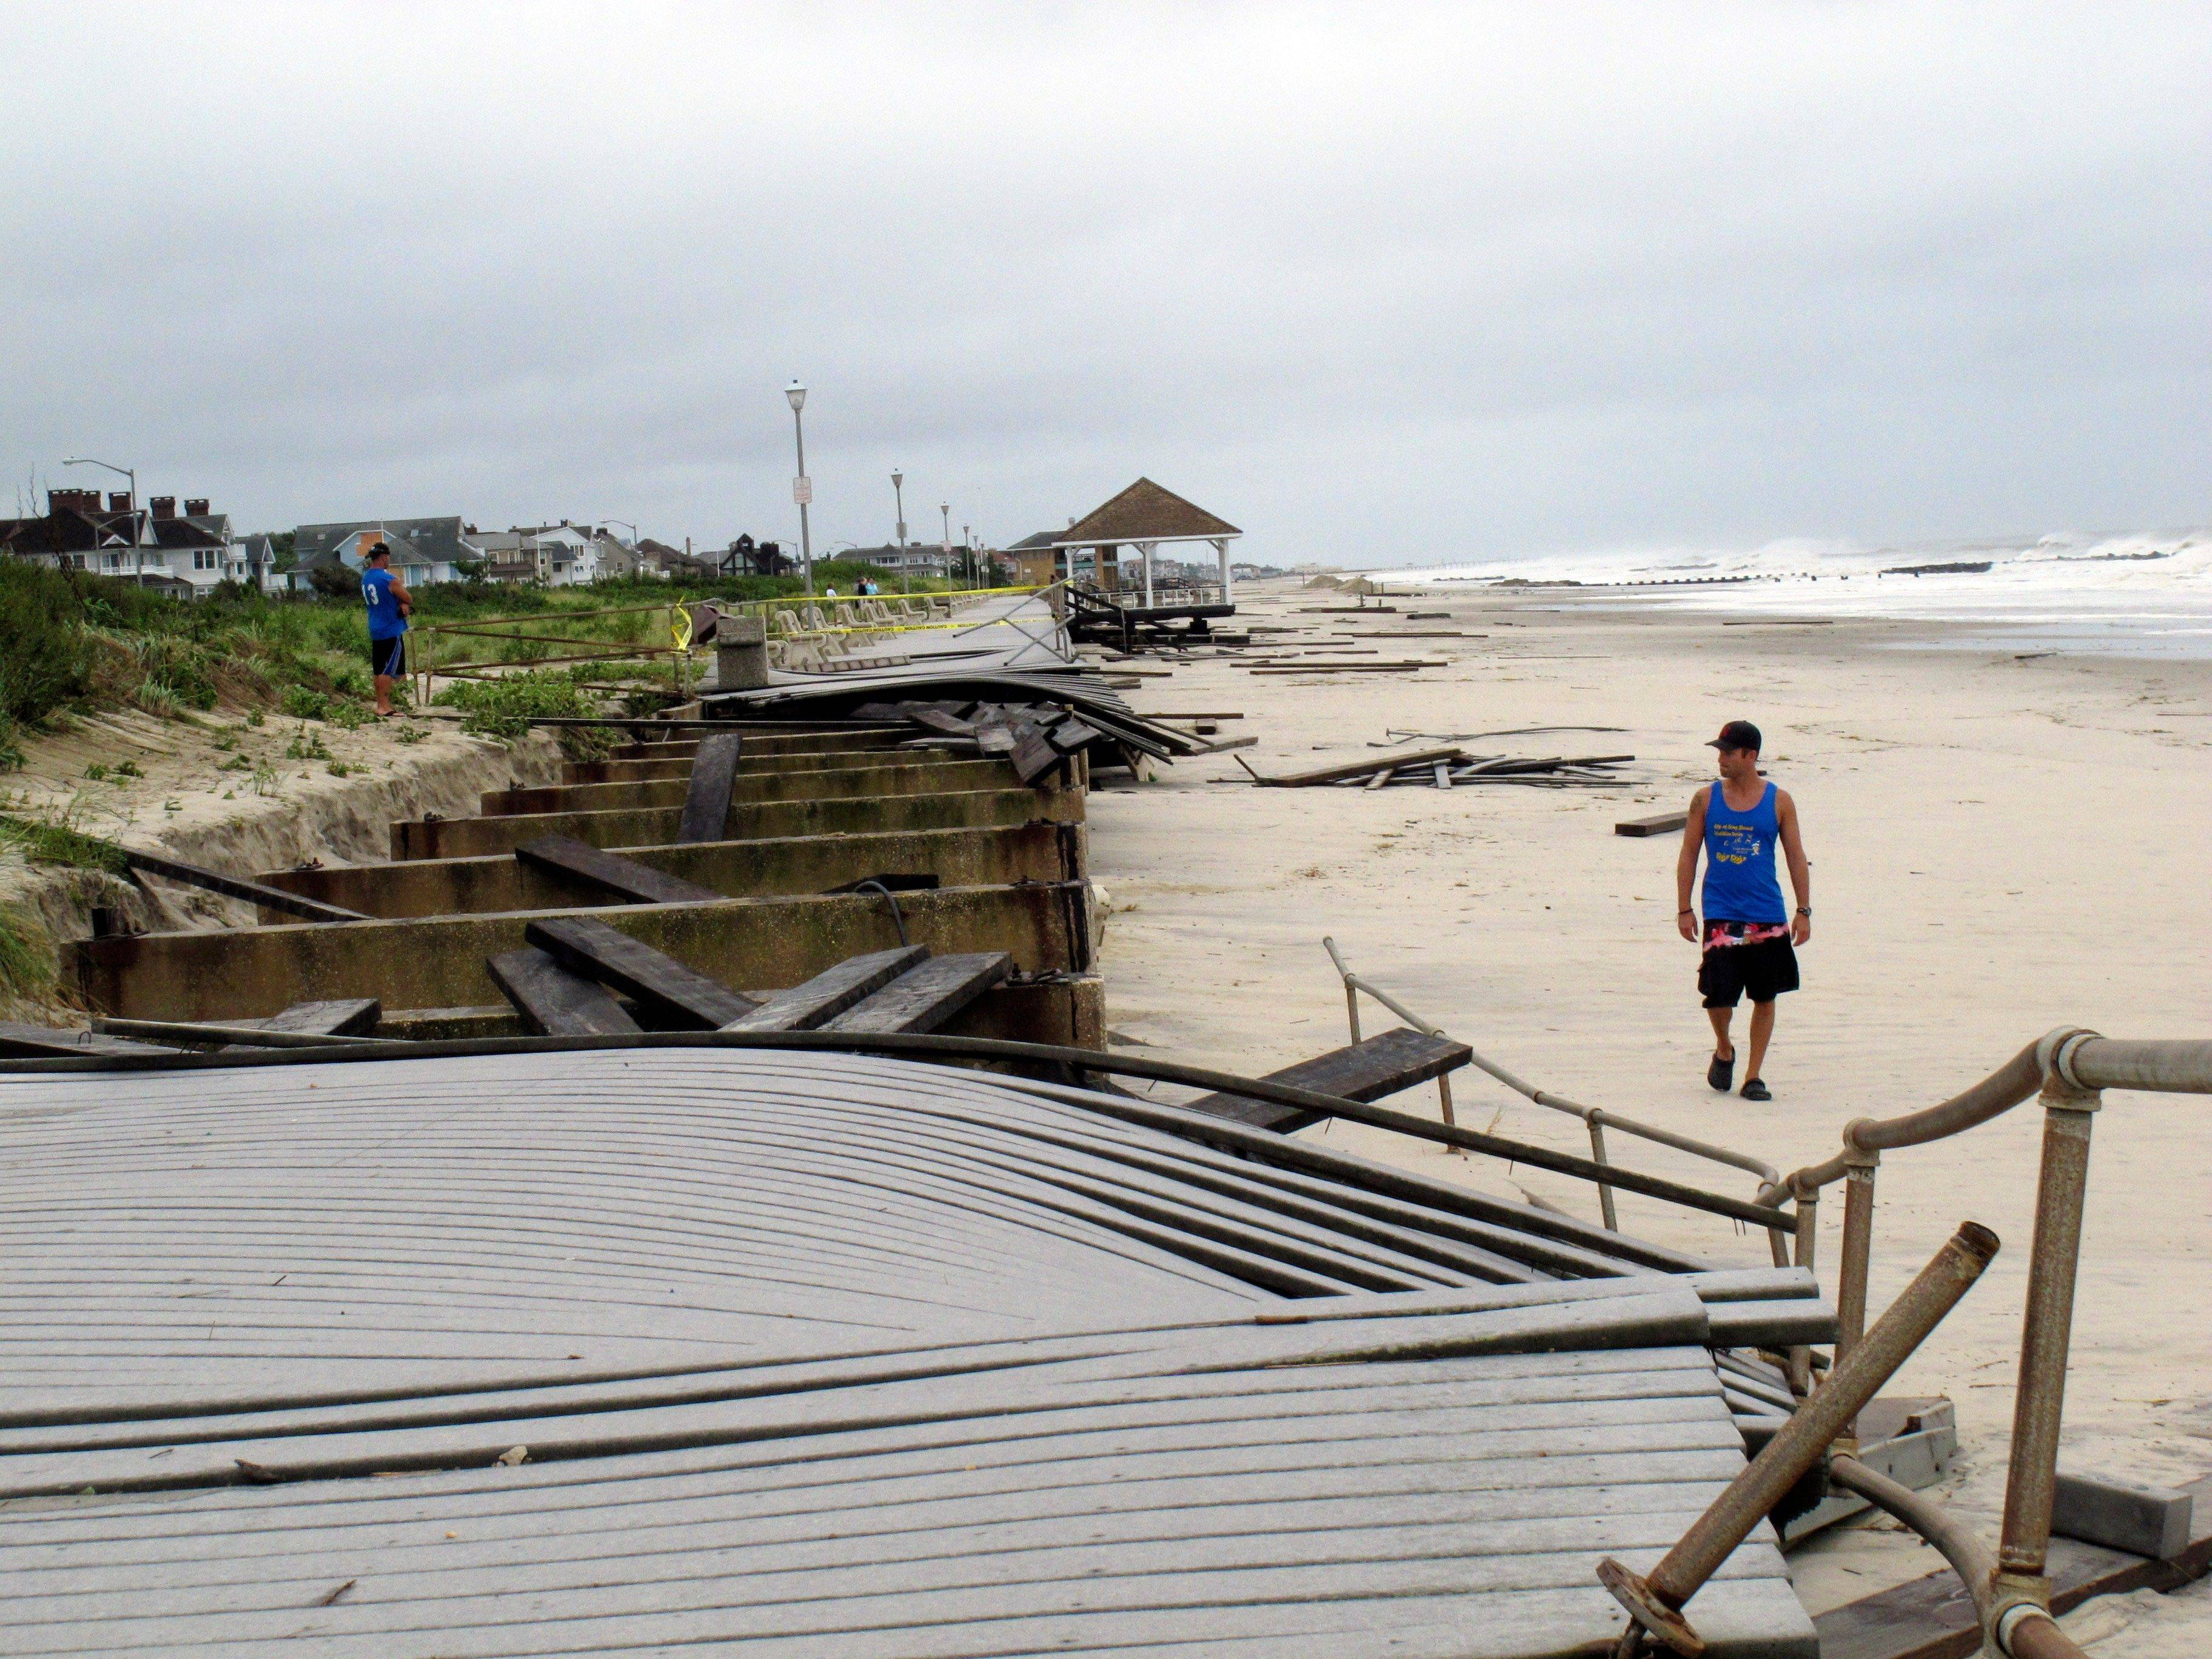 Spectators look at the ruined boardwalk in Spring Lake, N.J., hours after Hurricane Irene damaged most of the two-mile walkway.